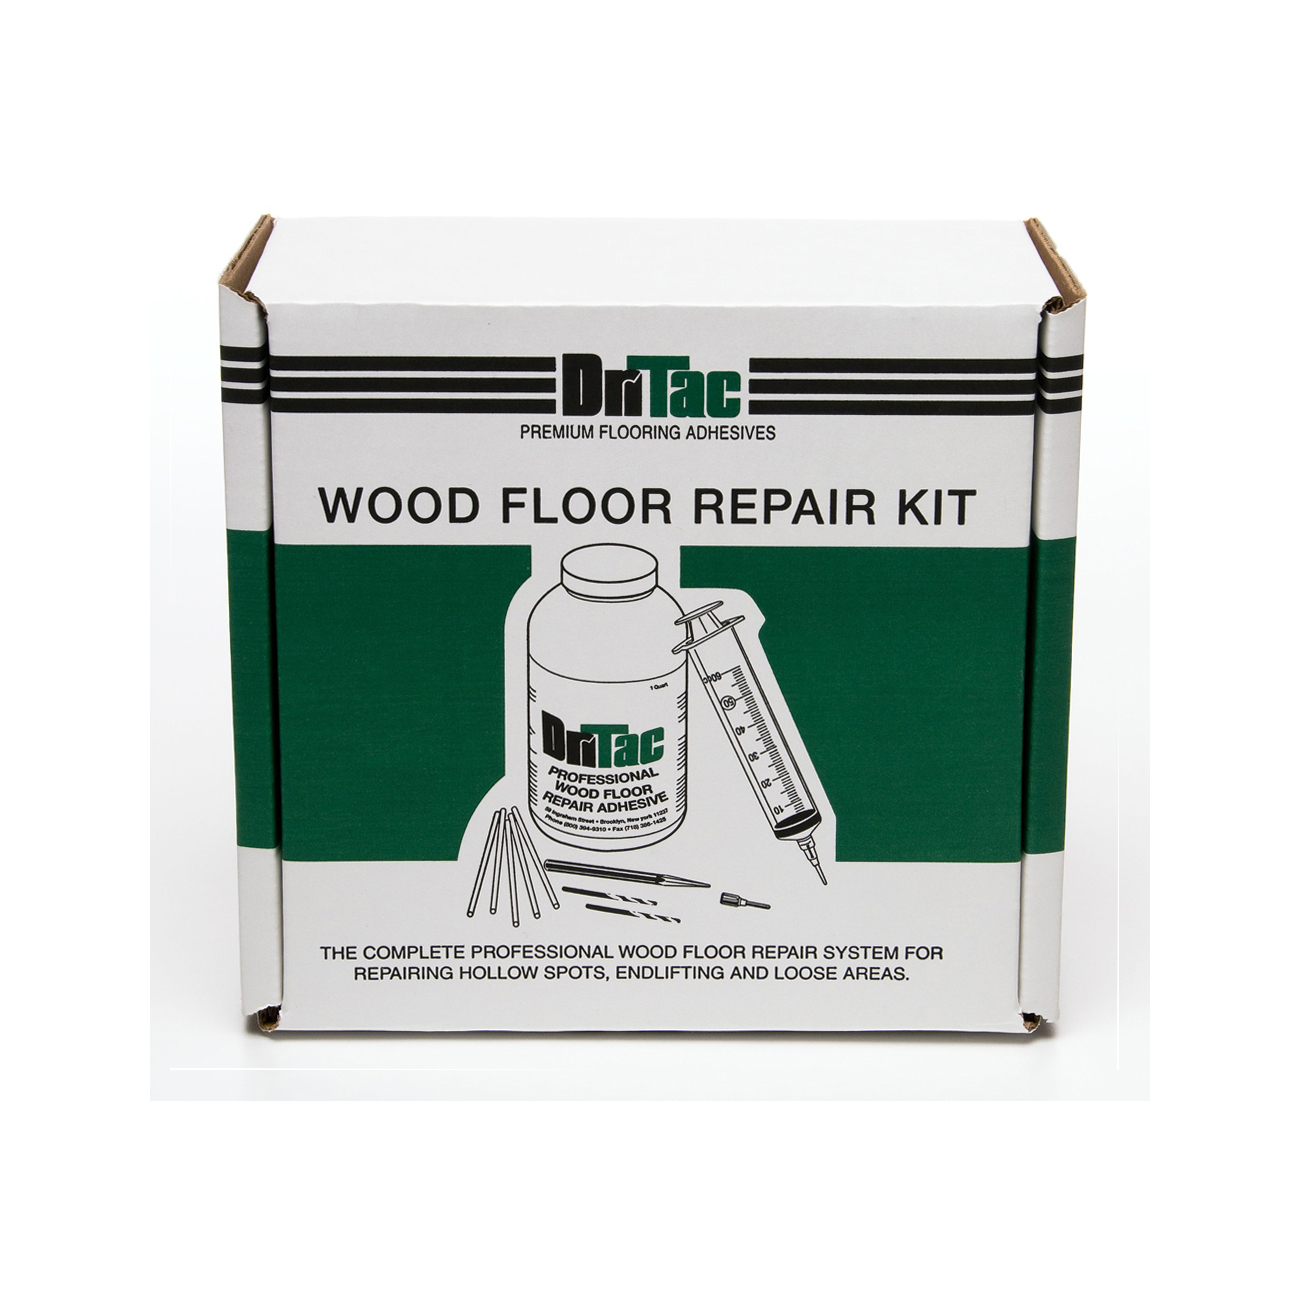 dritac premium flooring adhesives wood floor repair kit for engineered flooring ebay. Black Bedroom Furniture Sets. Home Design Ideas